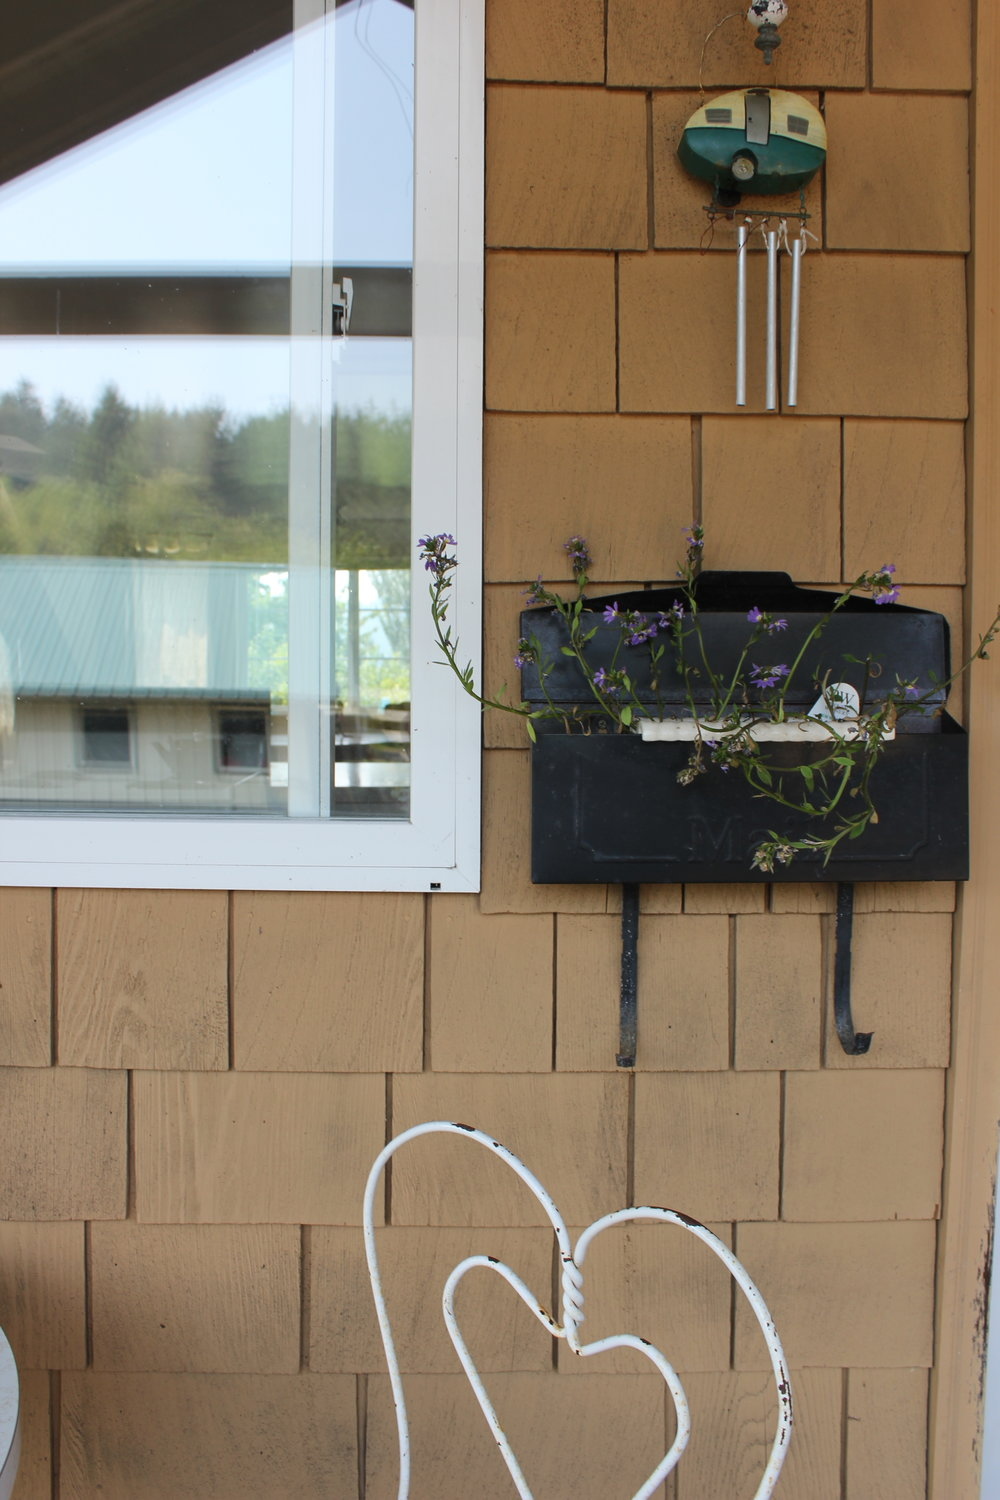 windchime plants and heart details at plum nelli apartment porch.JPG